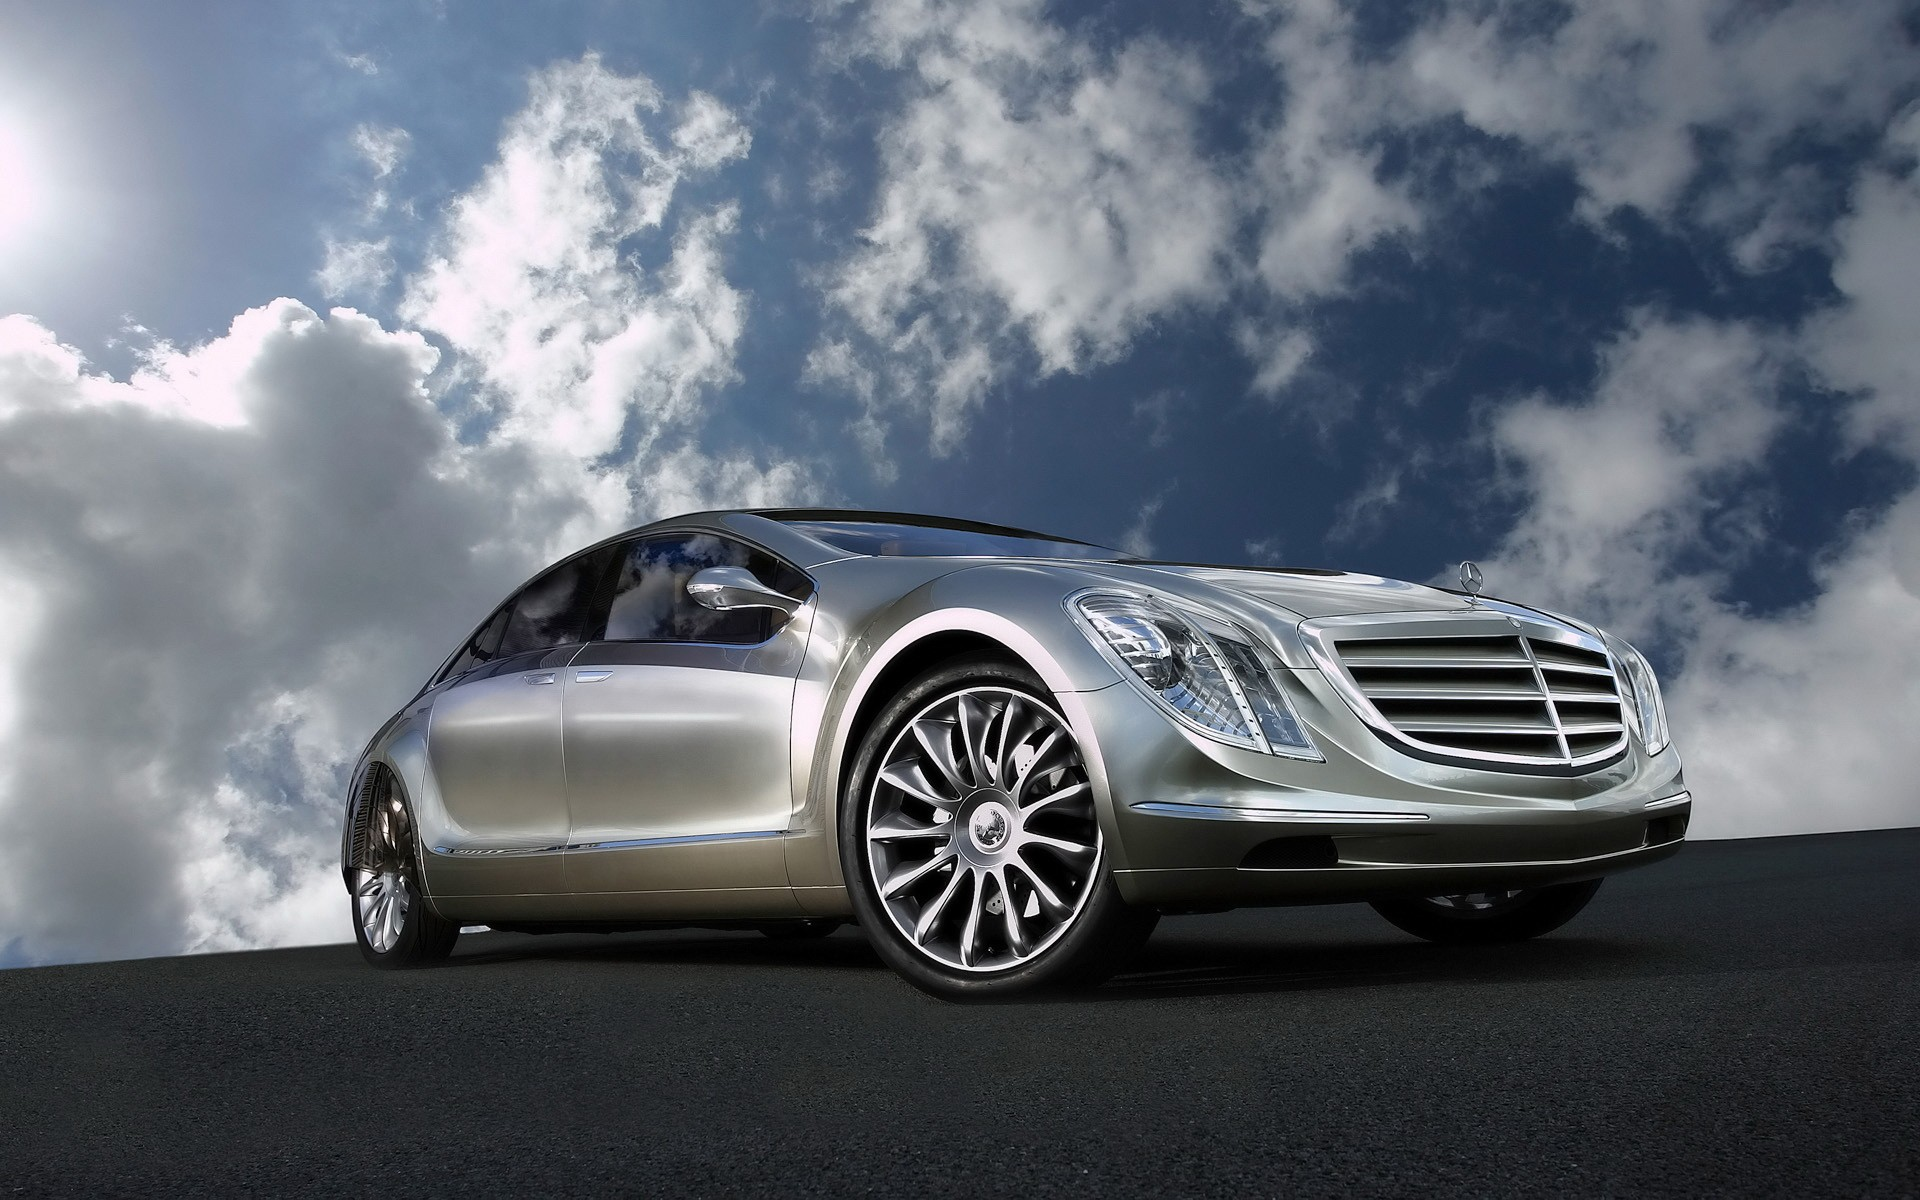 Mercedes benz f800 full hd wallpaper and background image for Mercedes benz f800